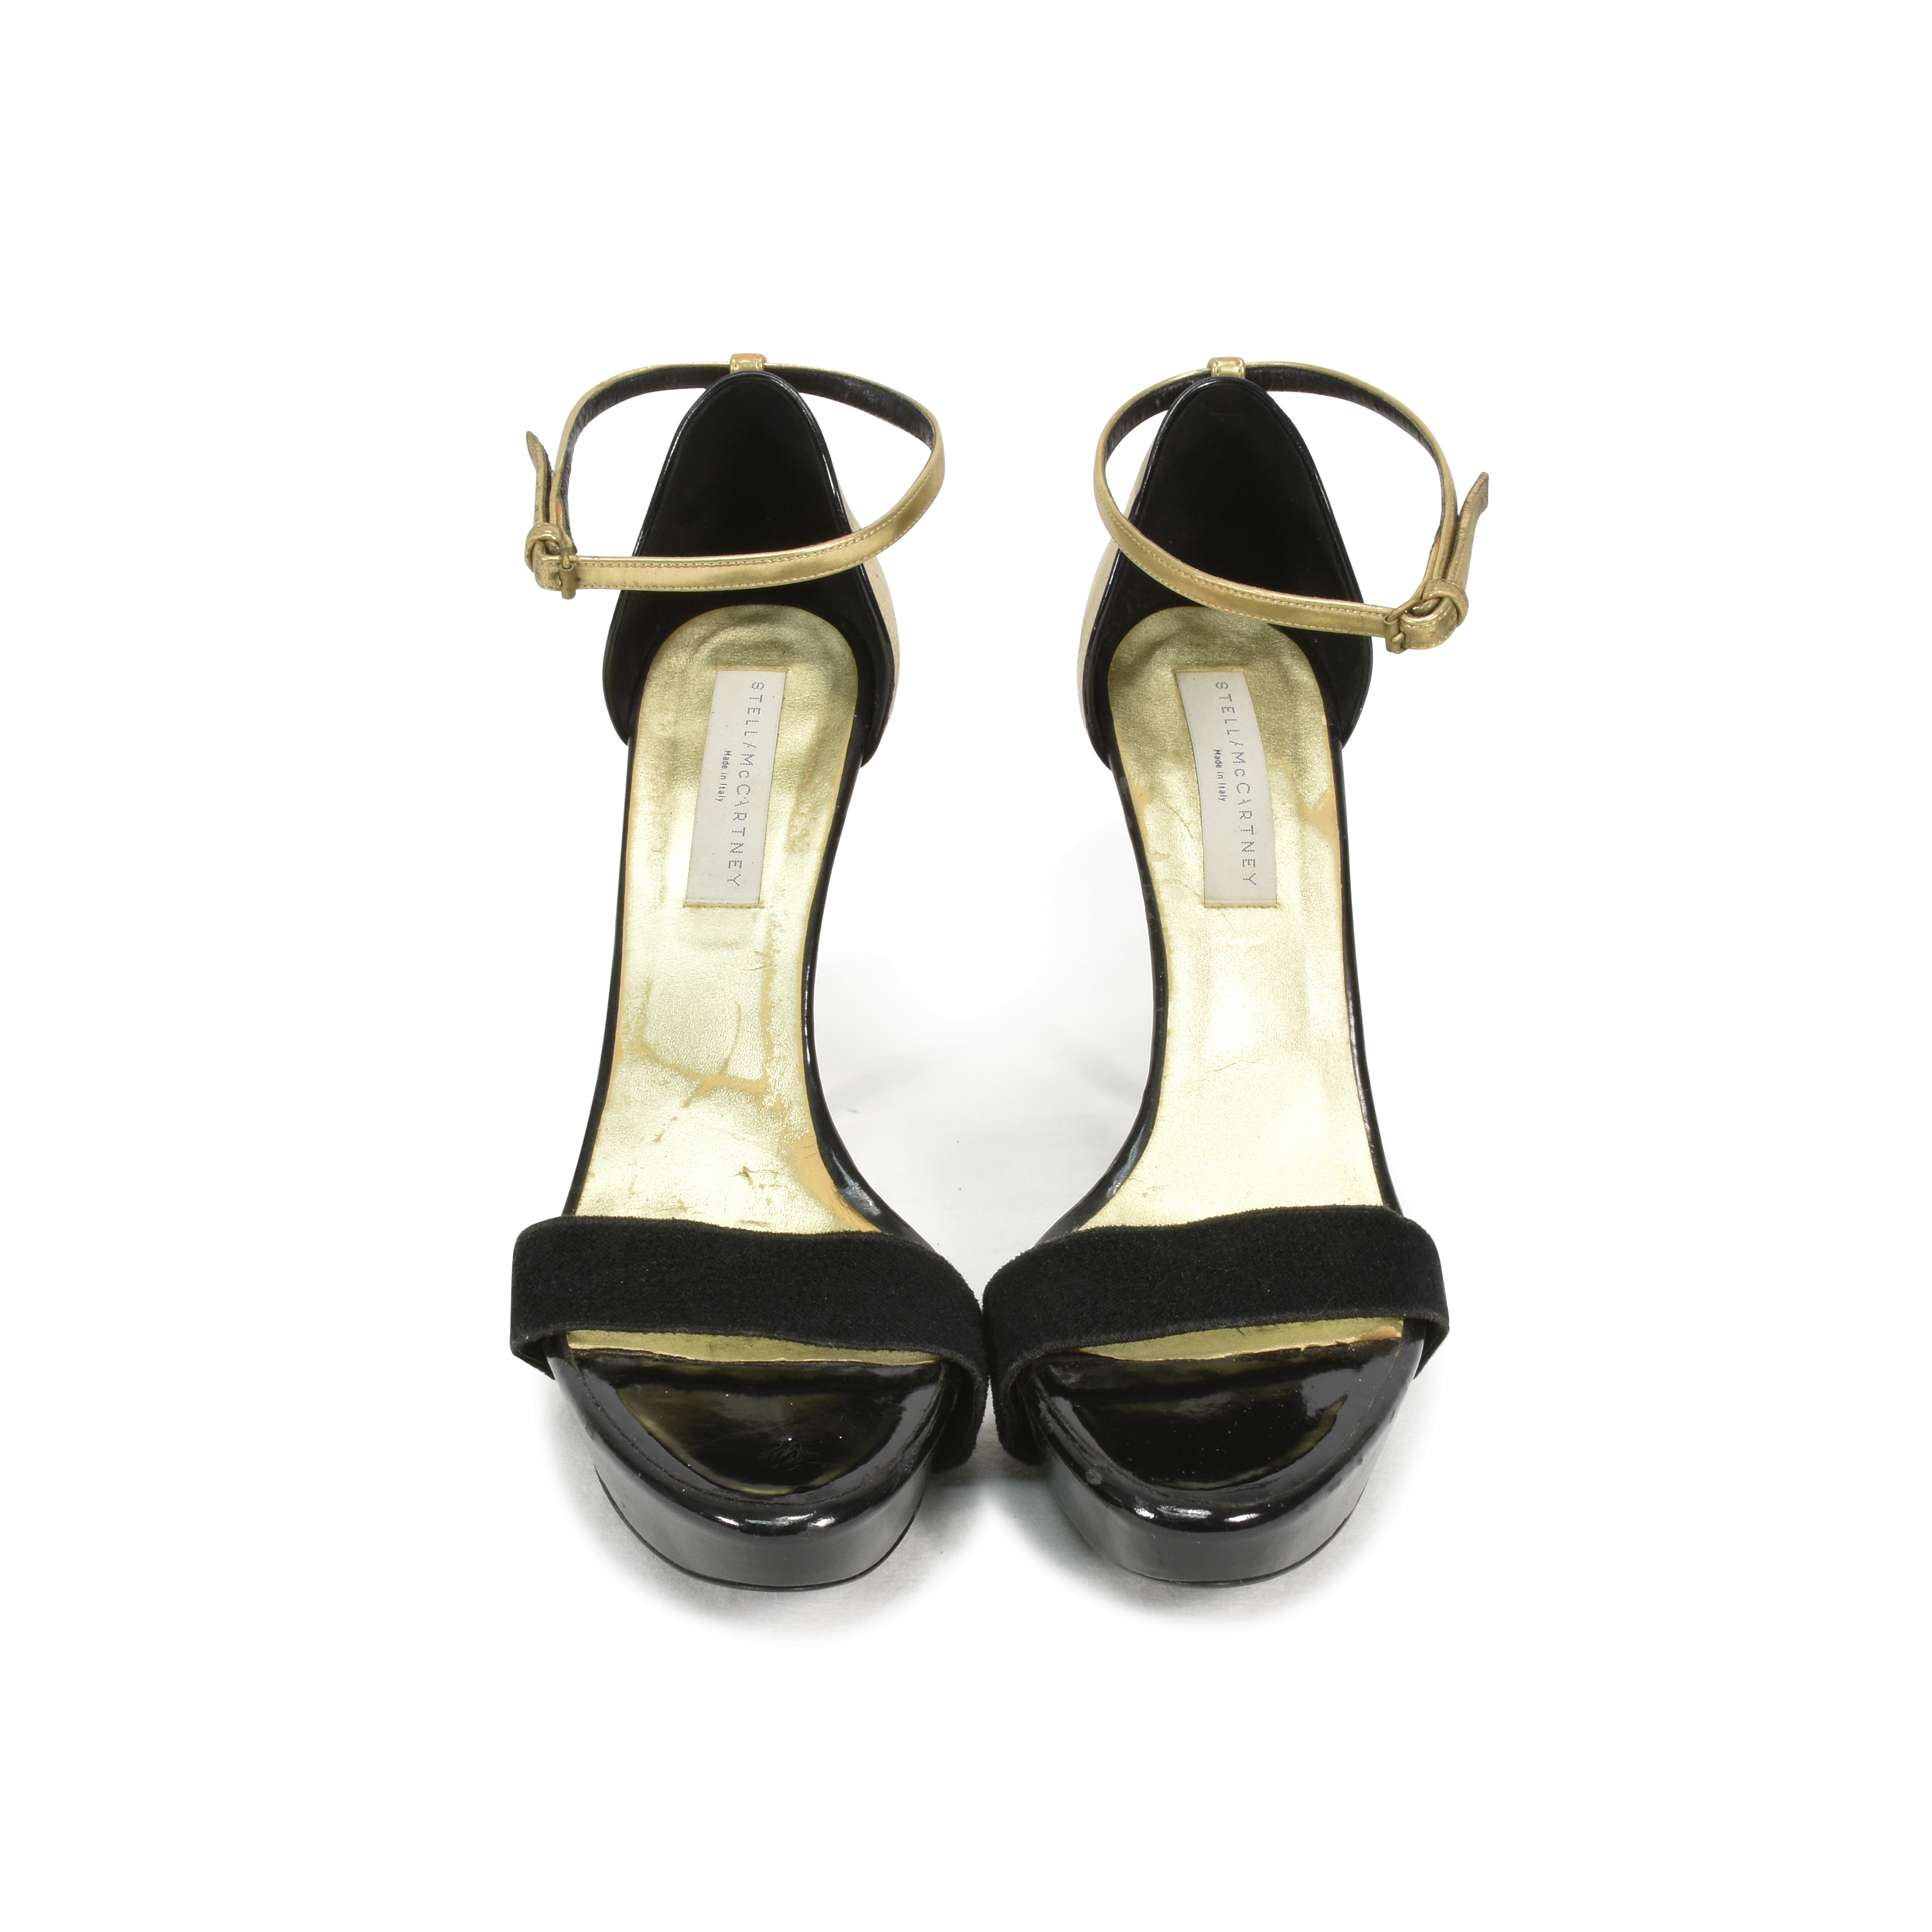 ae37abc4984f Authentic Second Hand Stella McCartney Contrasting Gold Sandals  (PSS-354-00020)